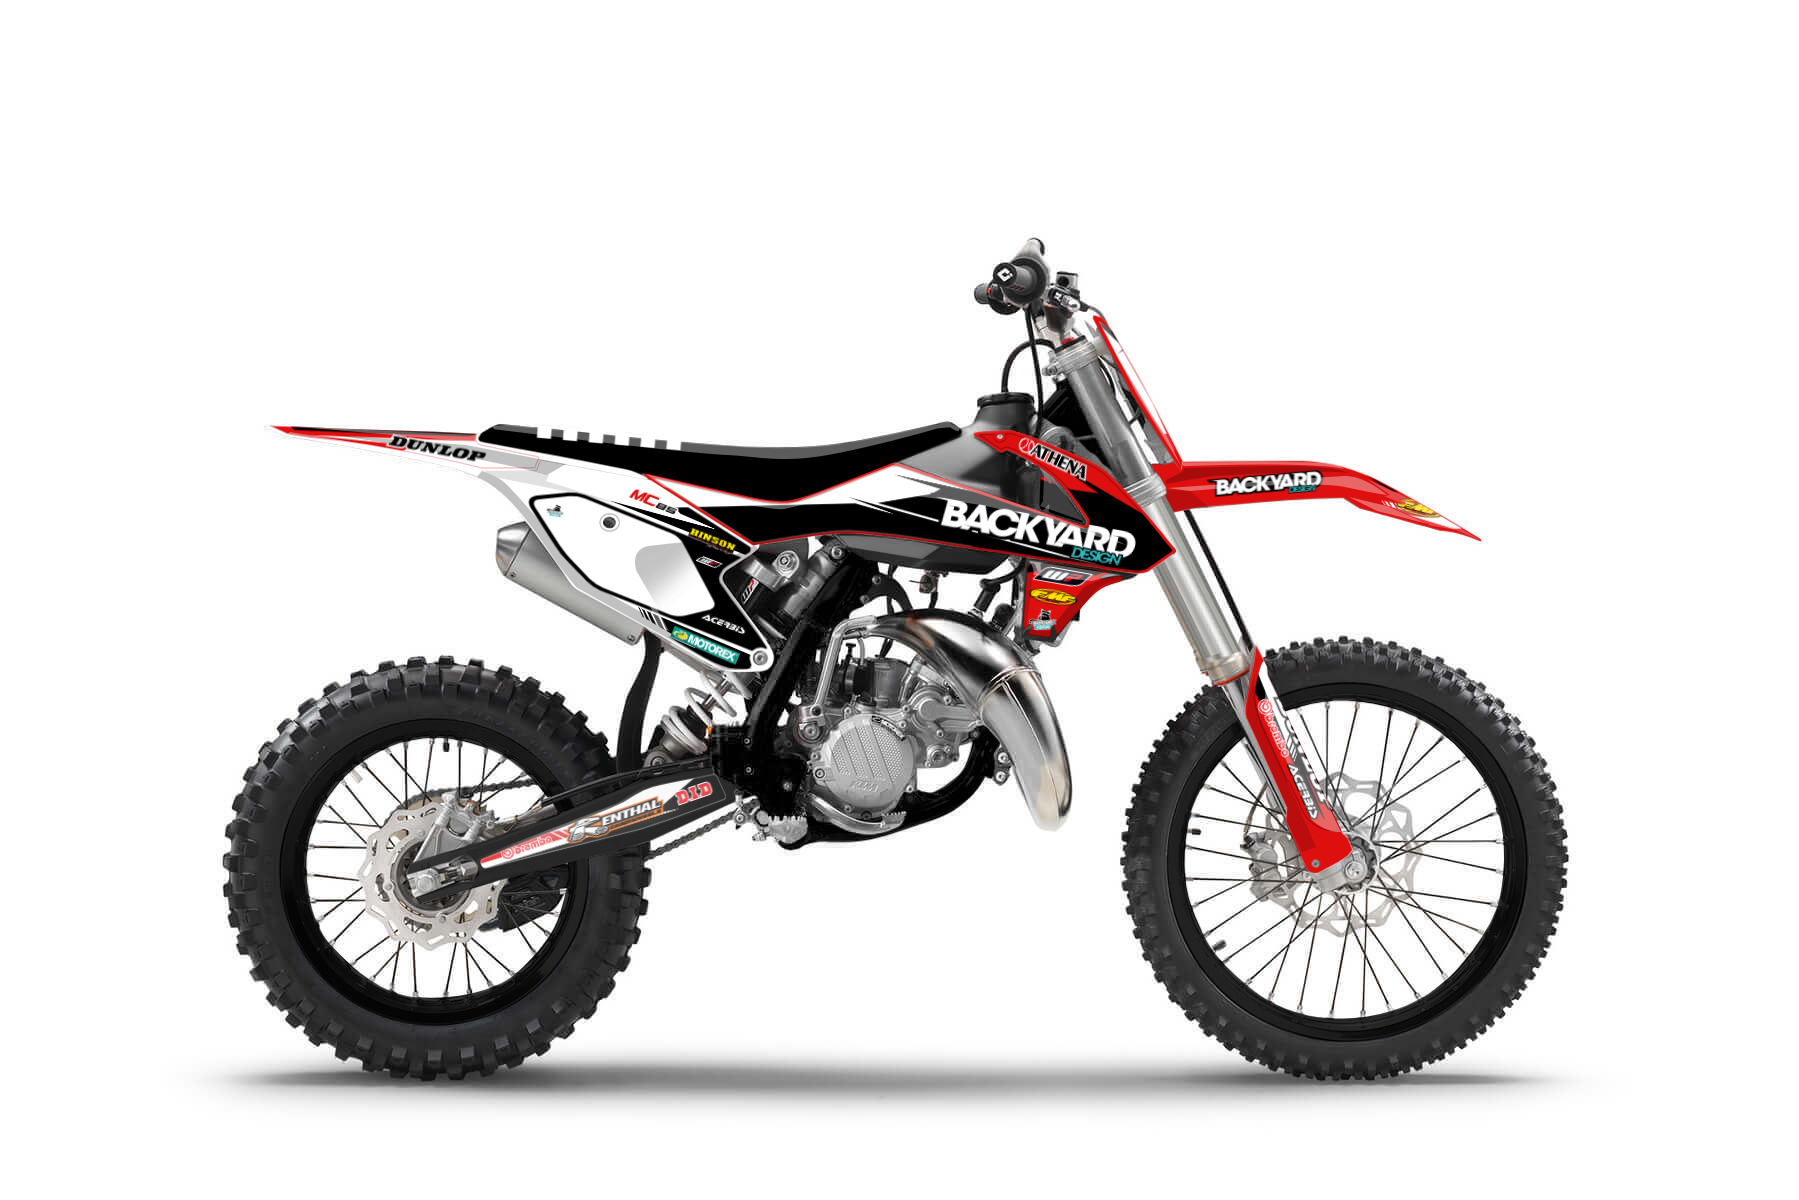 GasGas MC85 MX Graphic Kits  If you are new to the world of mx, this is your bike. The GasGas MC 85 is perfect for those youngsters searching for a powerful and easy to handle bike to earn first wins.